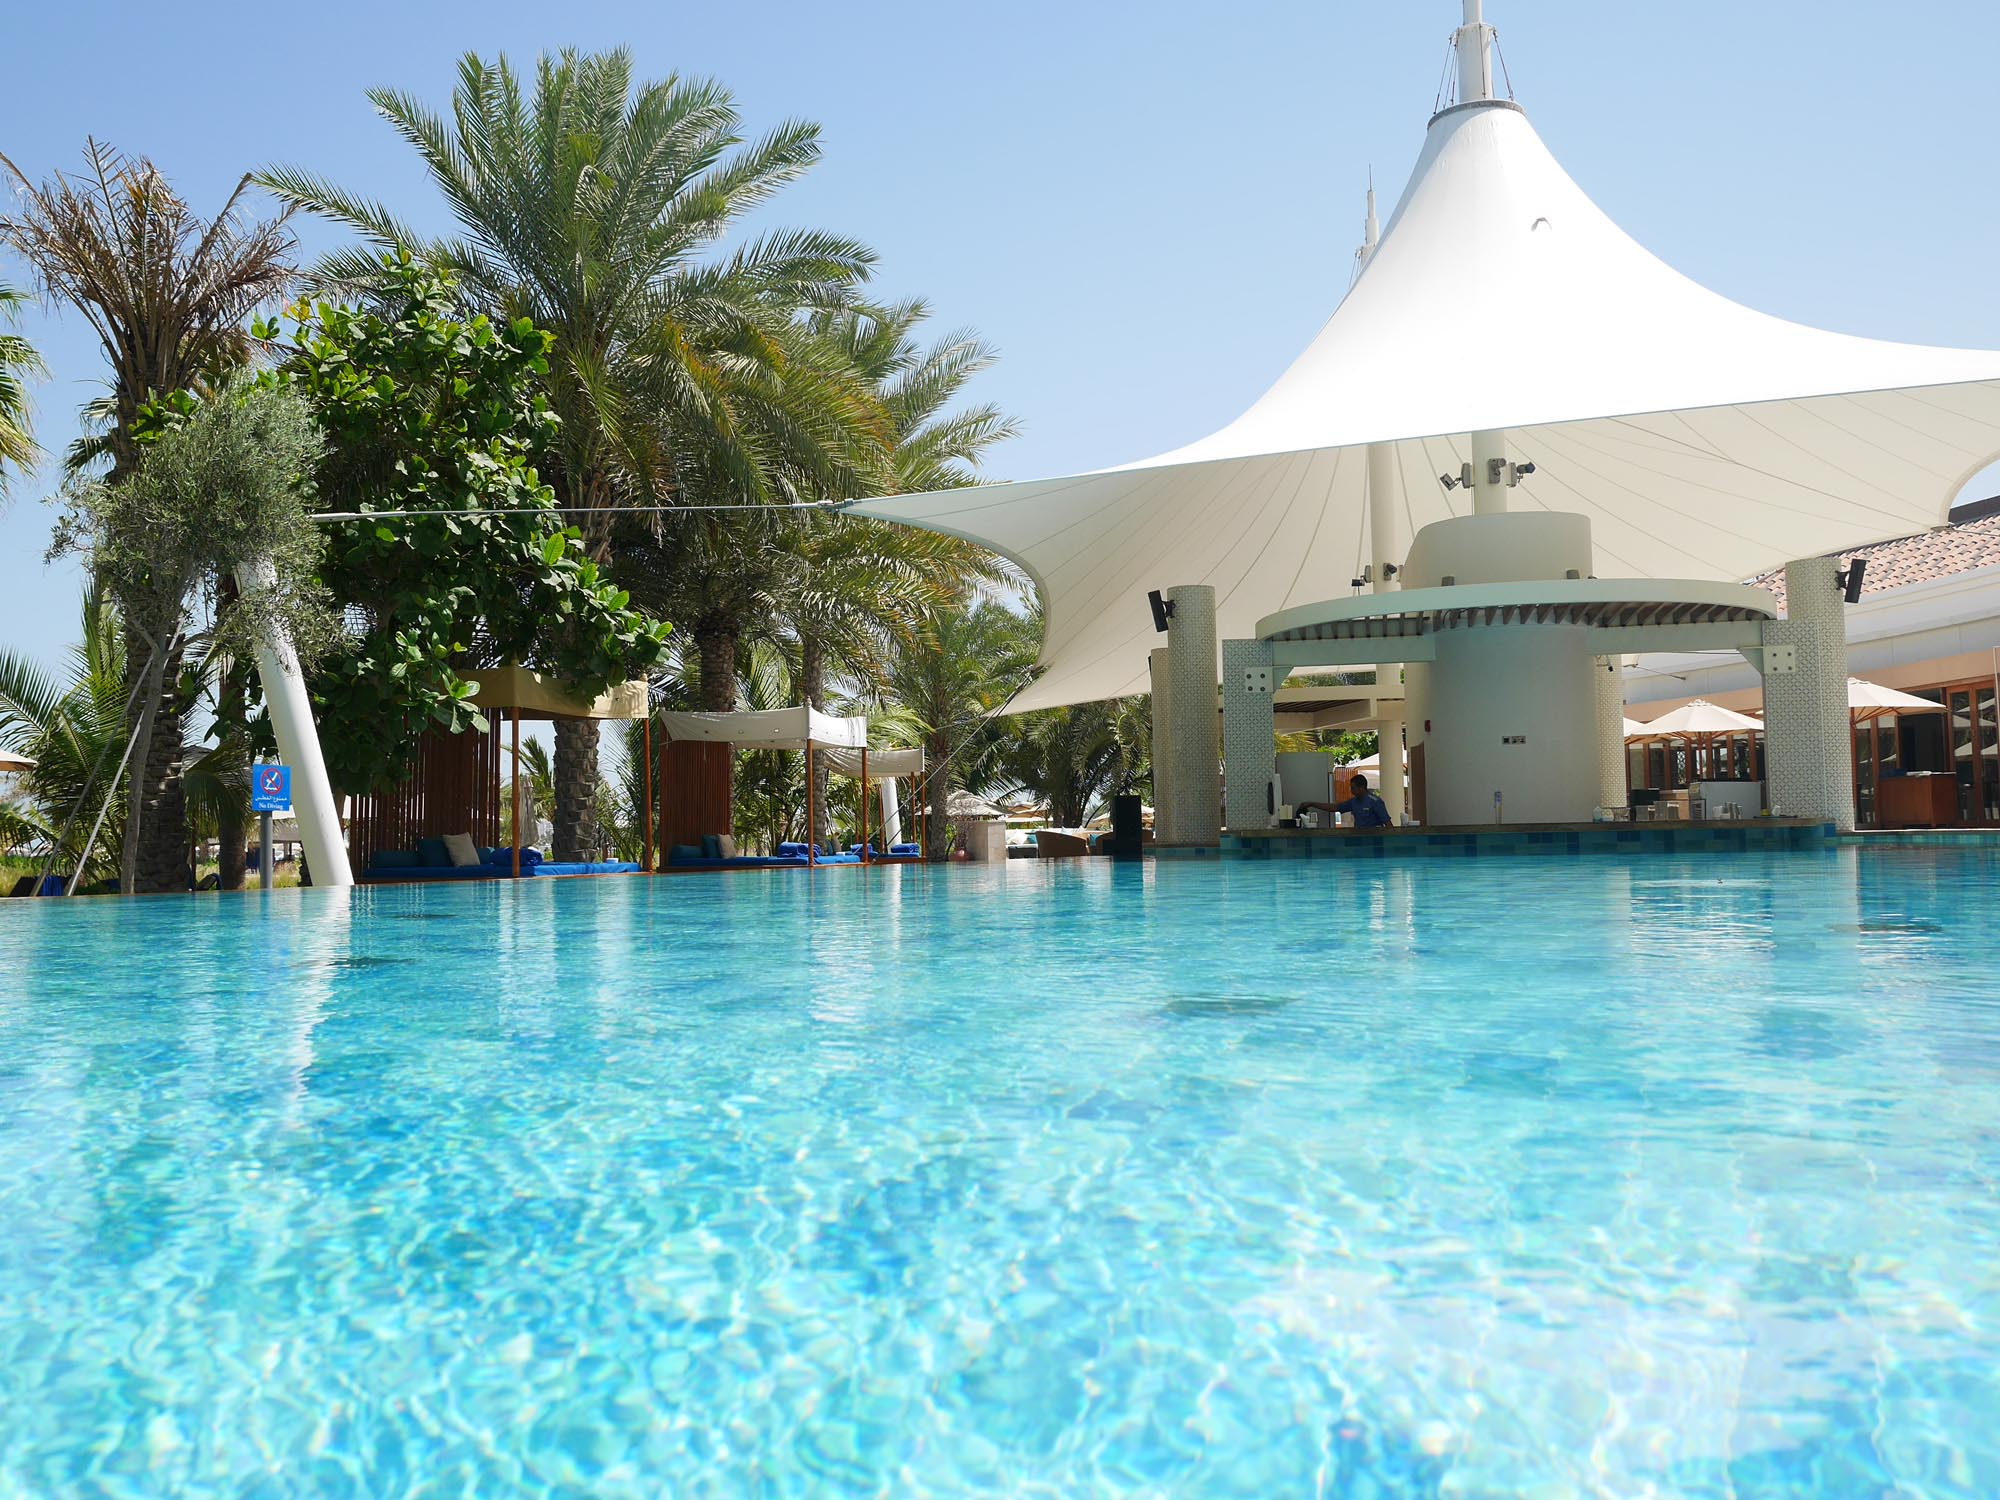 Ritz Carlton Dubai pool